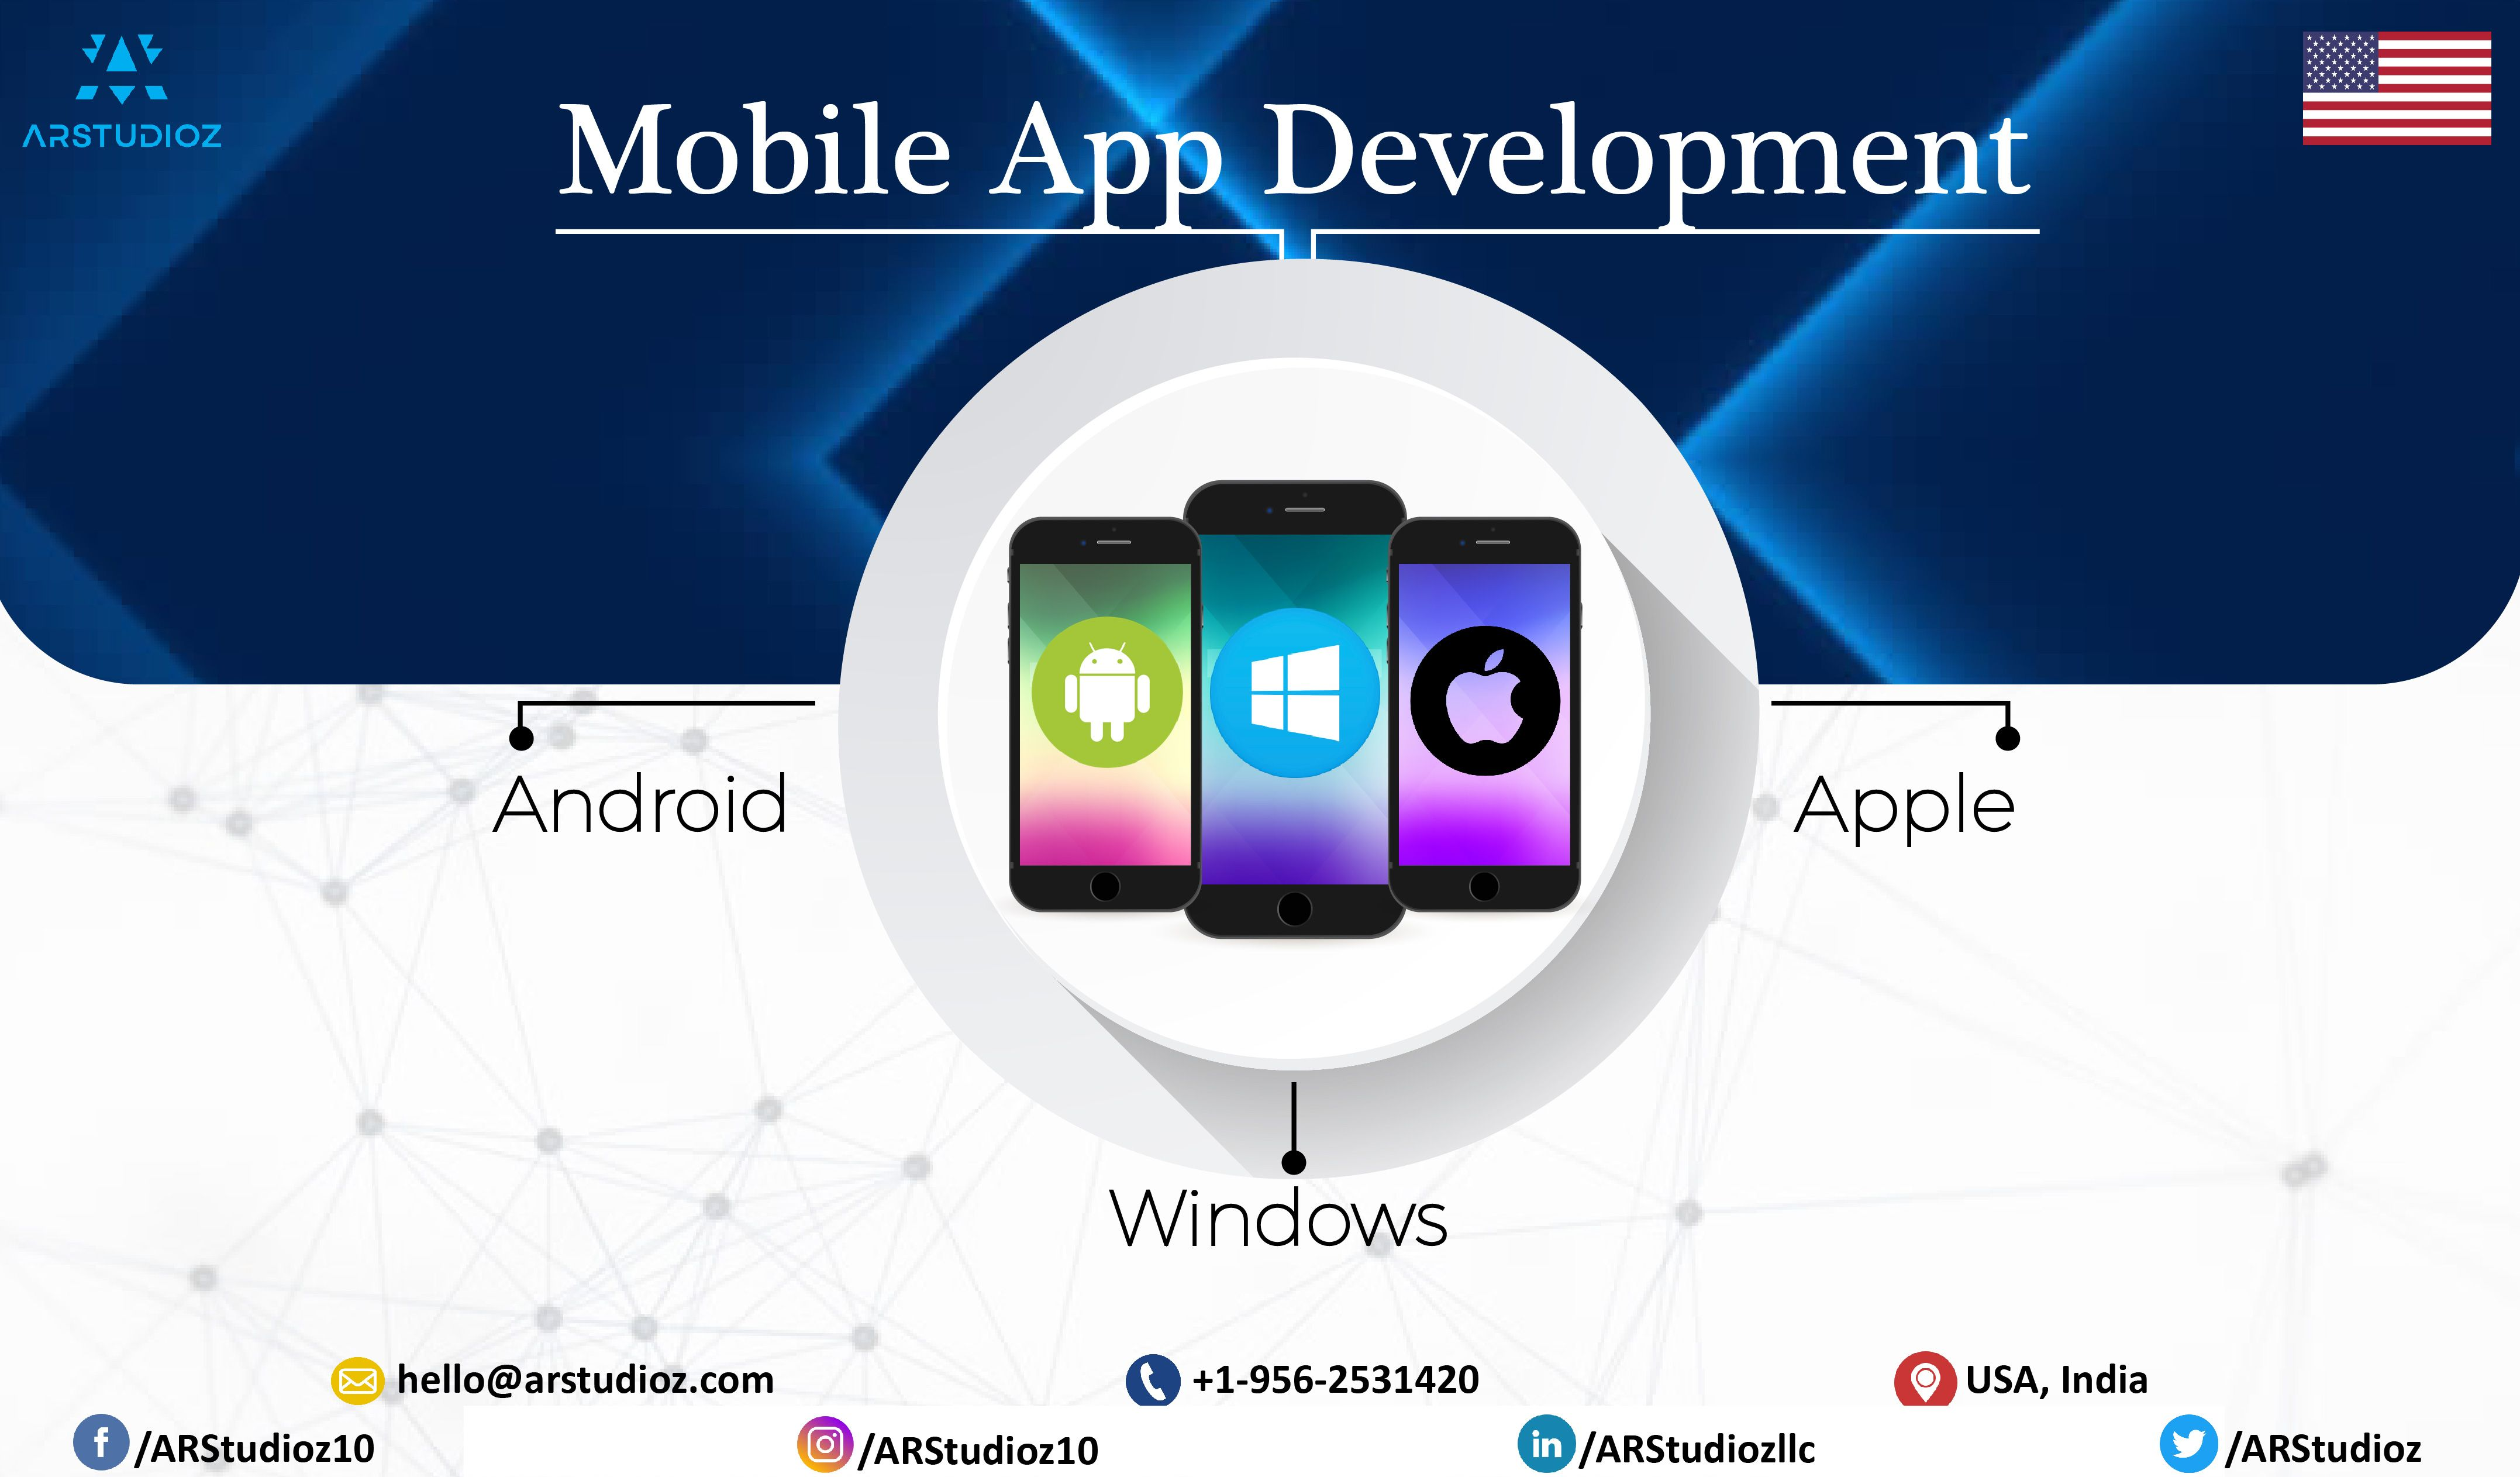 Arstudioz is known as a top mobile app development company